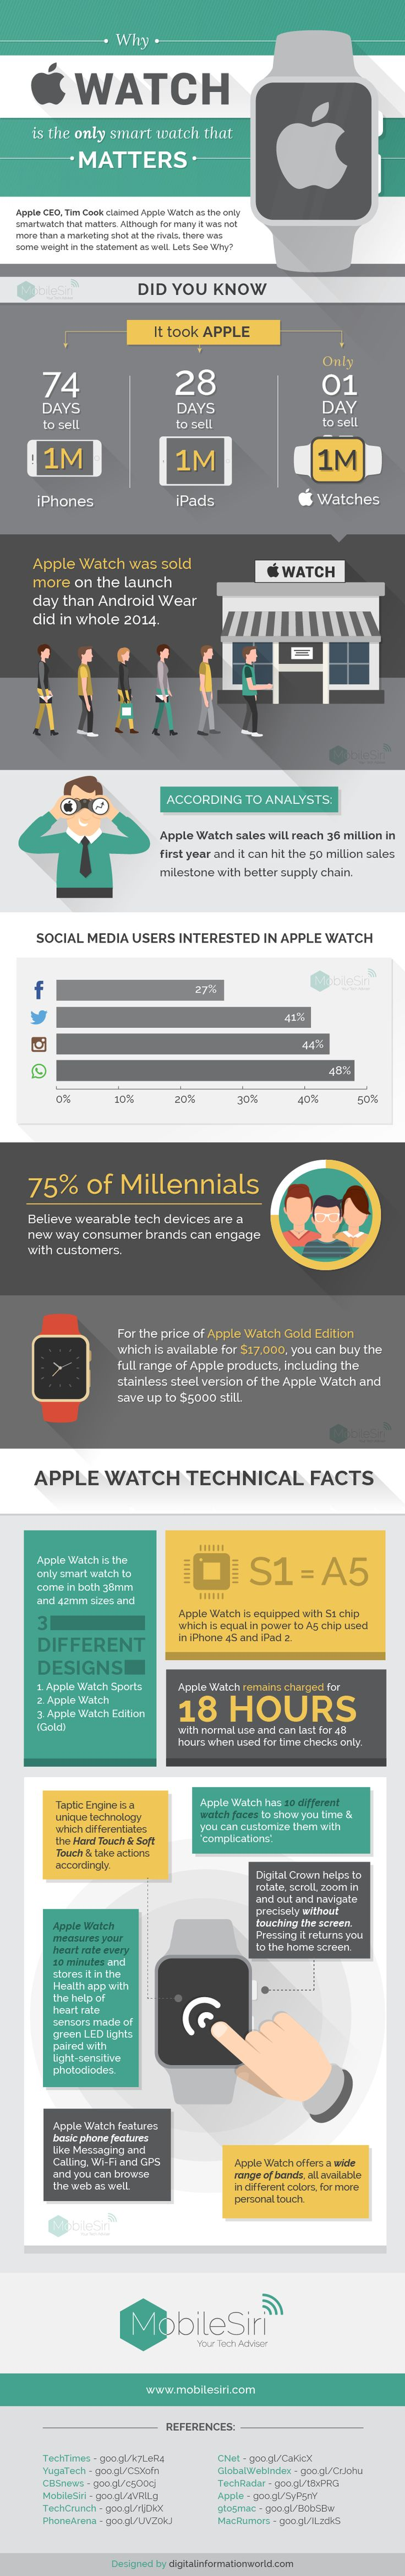 why-apple-watch-is-the-only-smart-watch-that-matters-infographic-Gracious-Watch